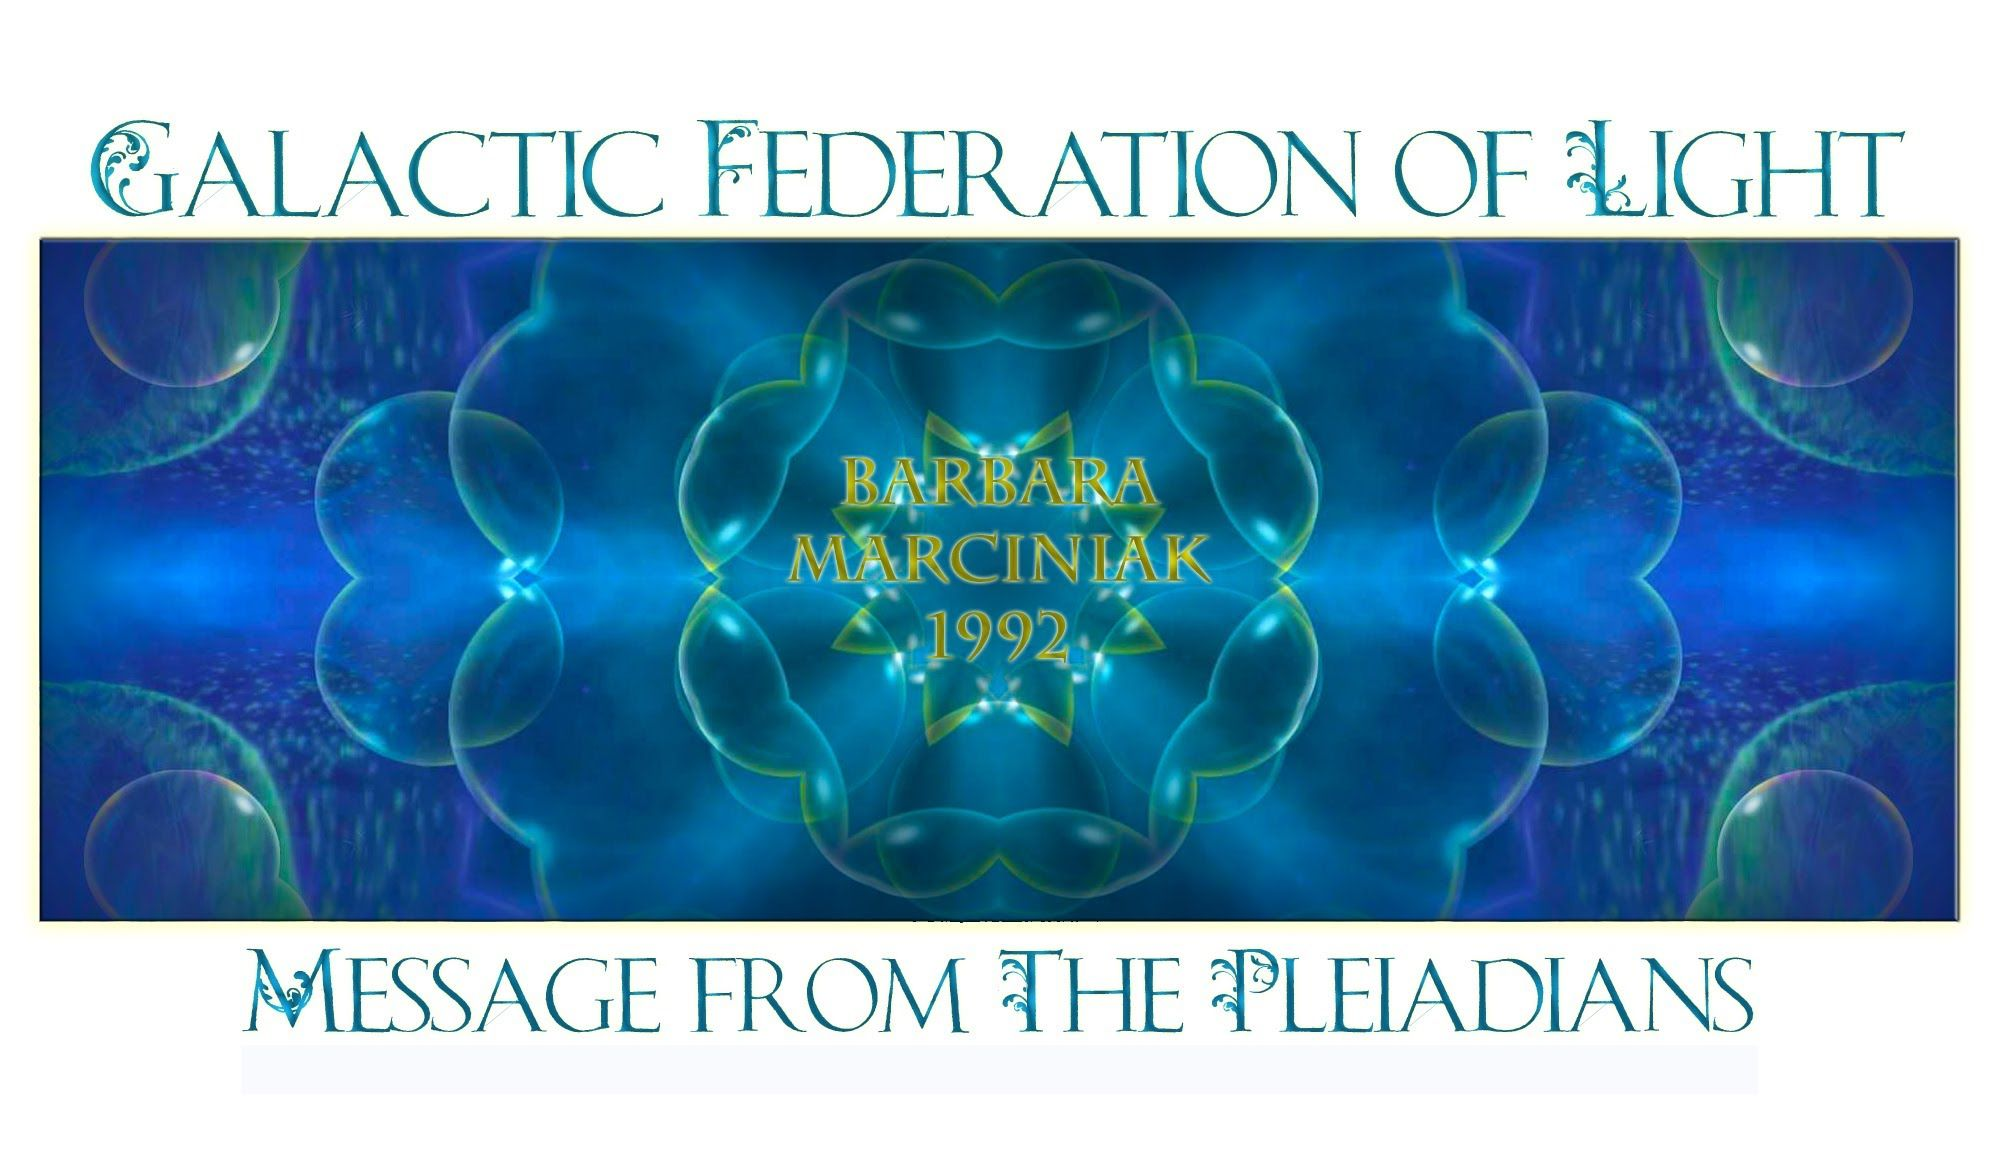 Message from The Pleiadians - Galactic Federation of Light